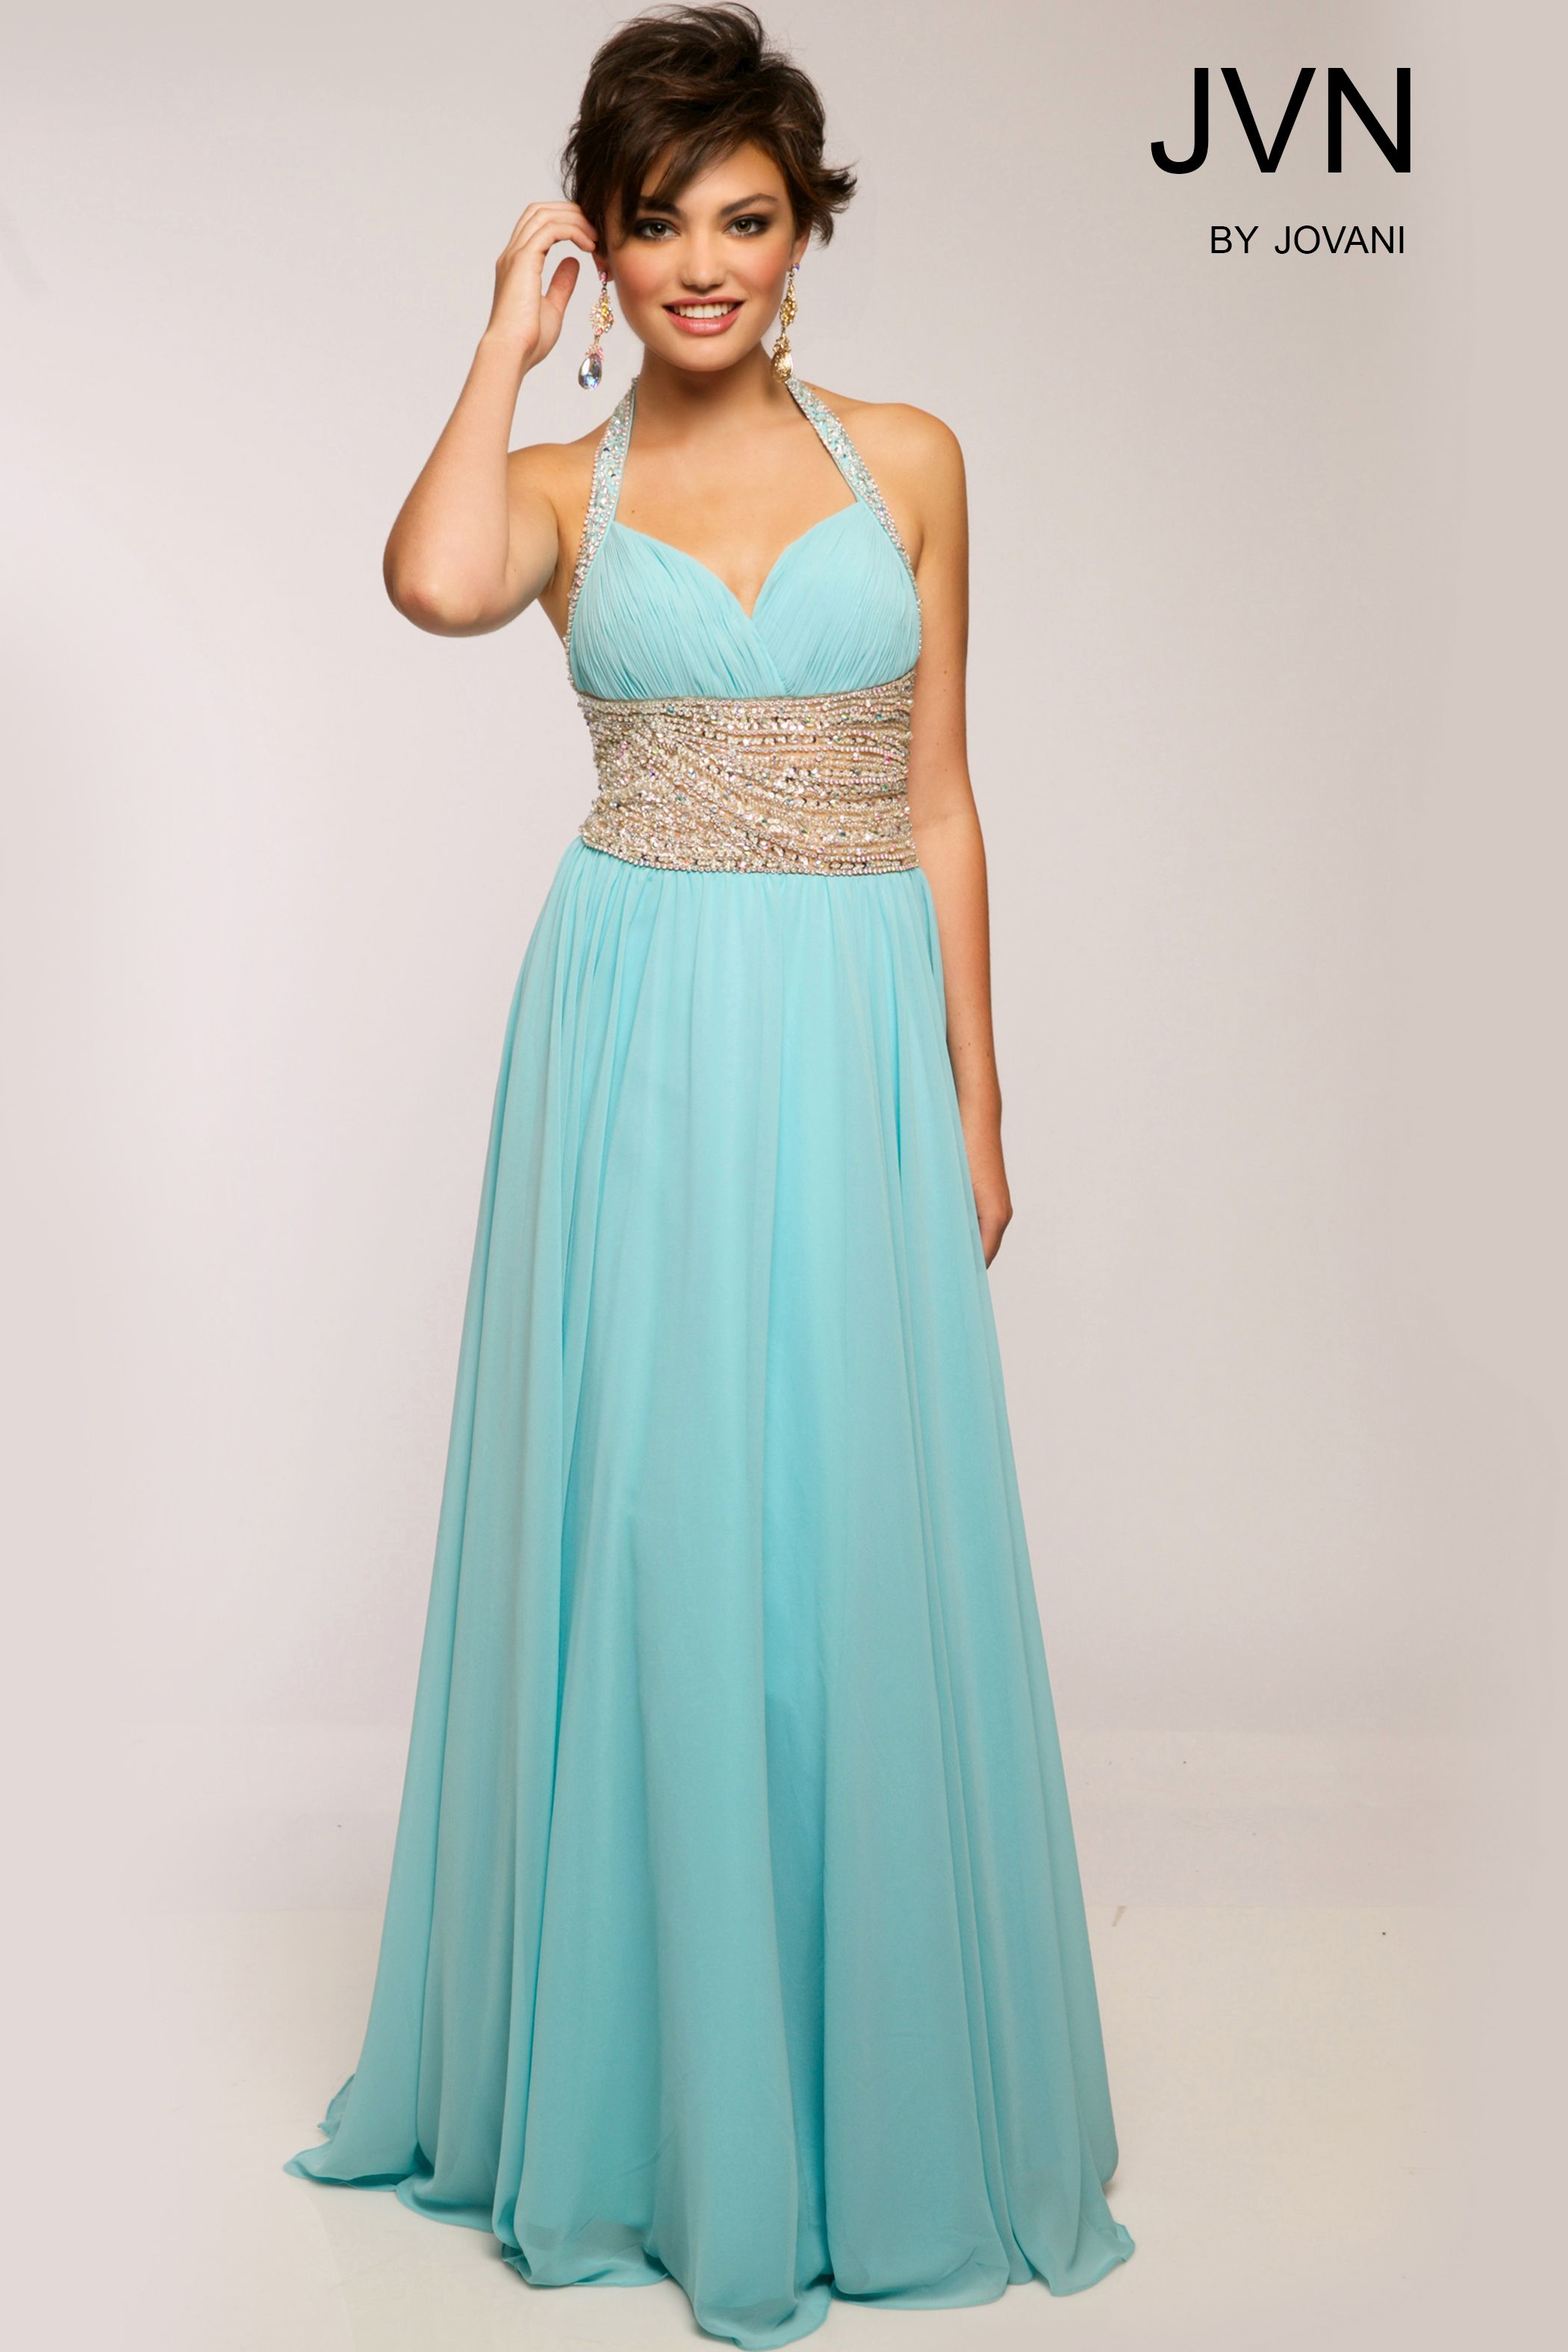 Funky Prom Dresses In Bowling Green Ky Sketch - All Wedding Dresses ...